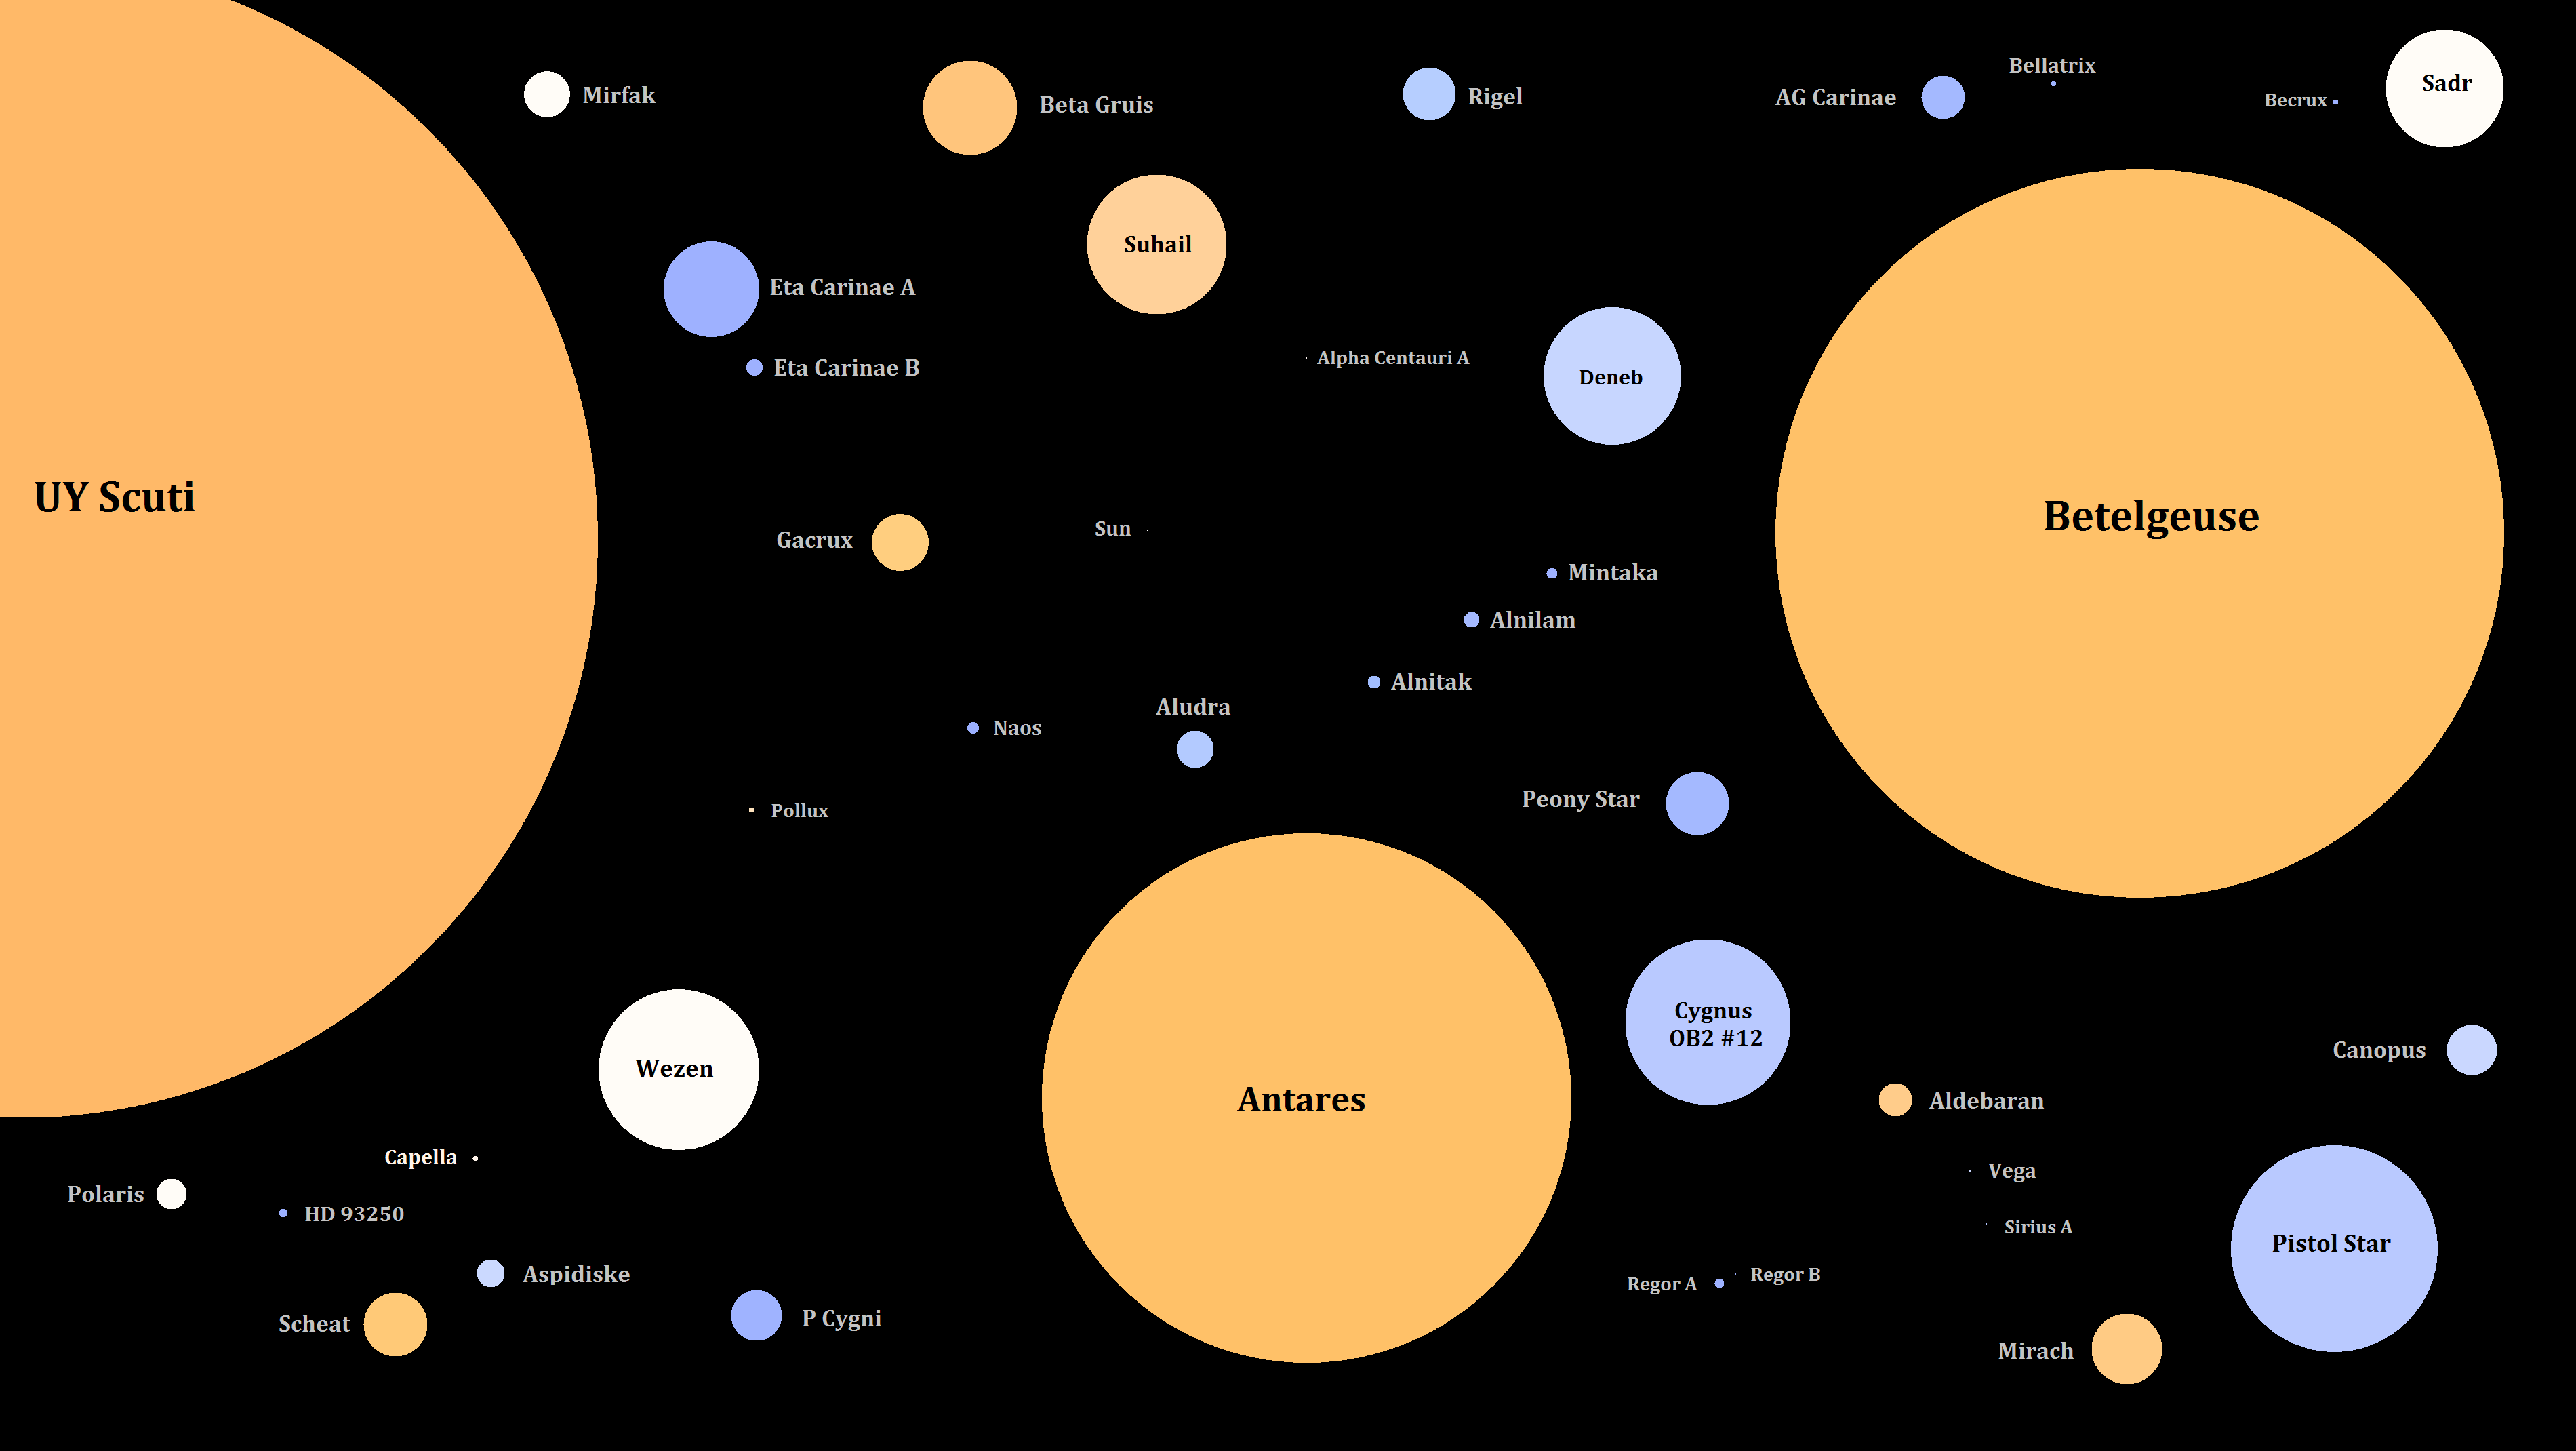 size comparison of many well known stars sizes are to scale in relation to each other the sun is an indiscernible speck in the middle about the size of  [ 3800 x 2140 Pixel ]